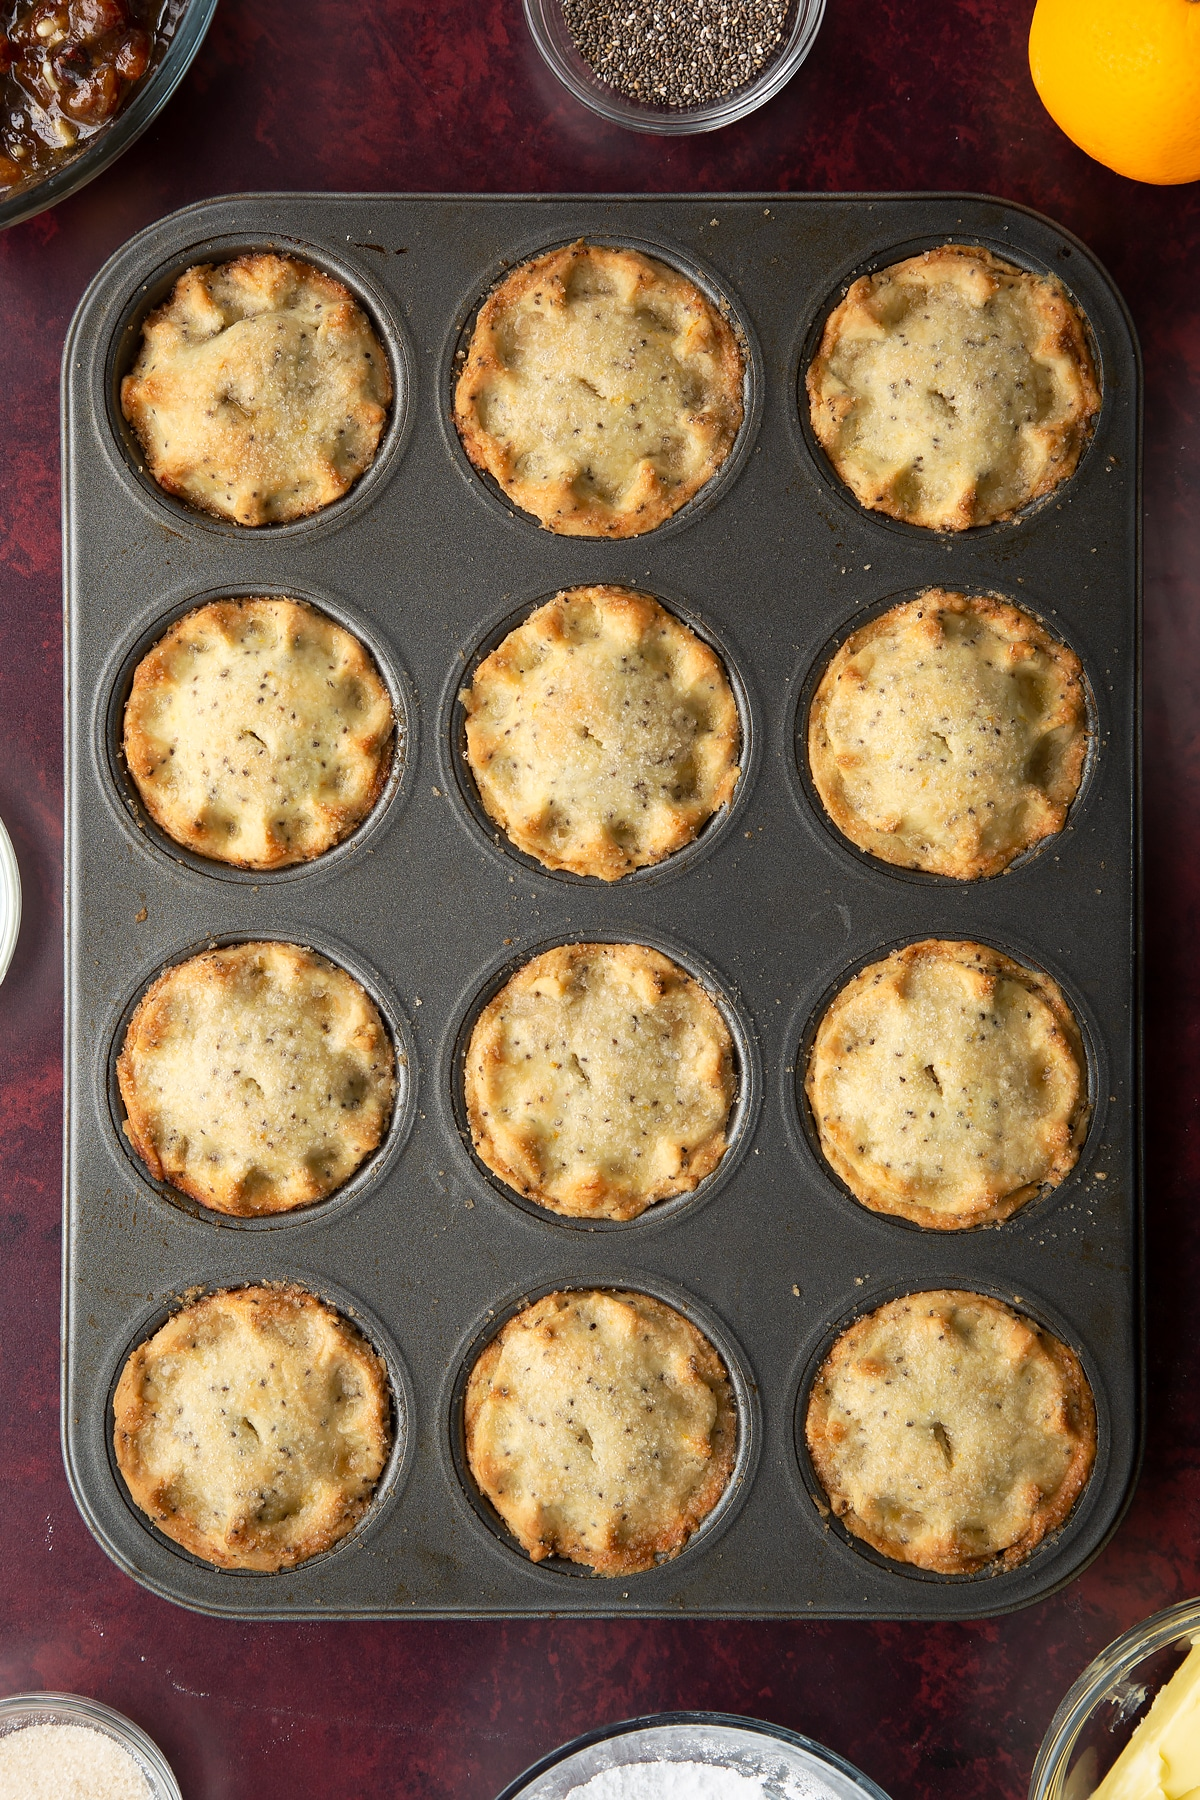 Freshly baked vegan mince pies in a muffin tray.